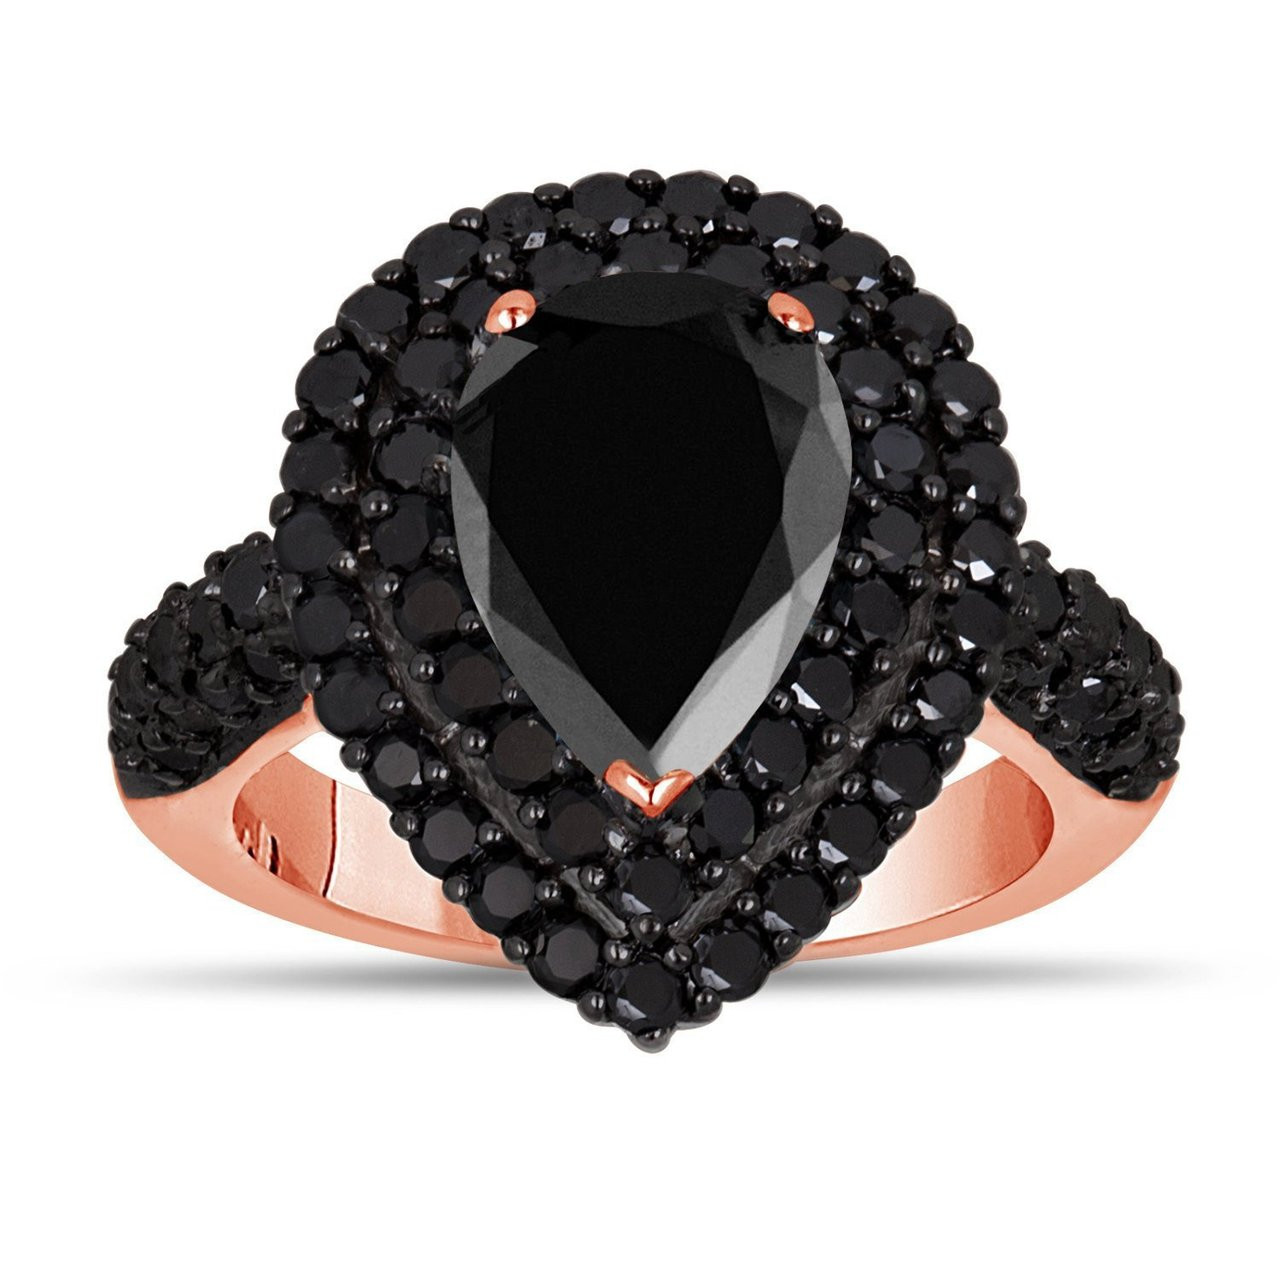 4 01 Carat Black Diamond Engagement Ring 14k Rose Gold Pear Shaped Double Halo Engagement Ring Unique Handmade Certified